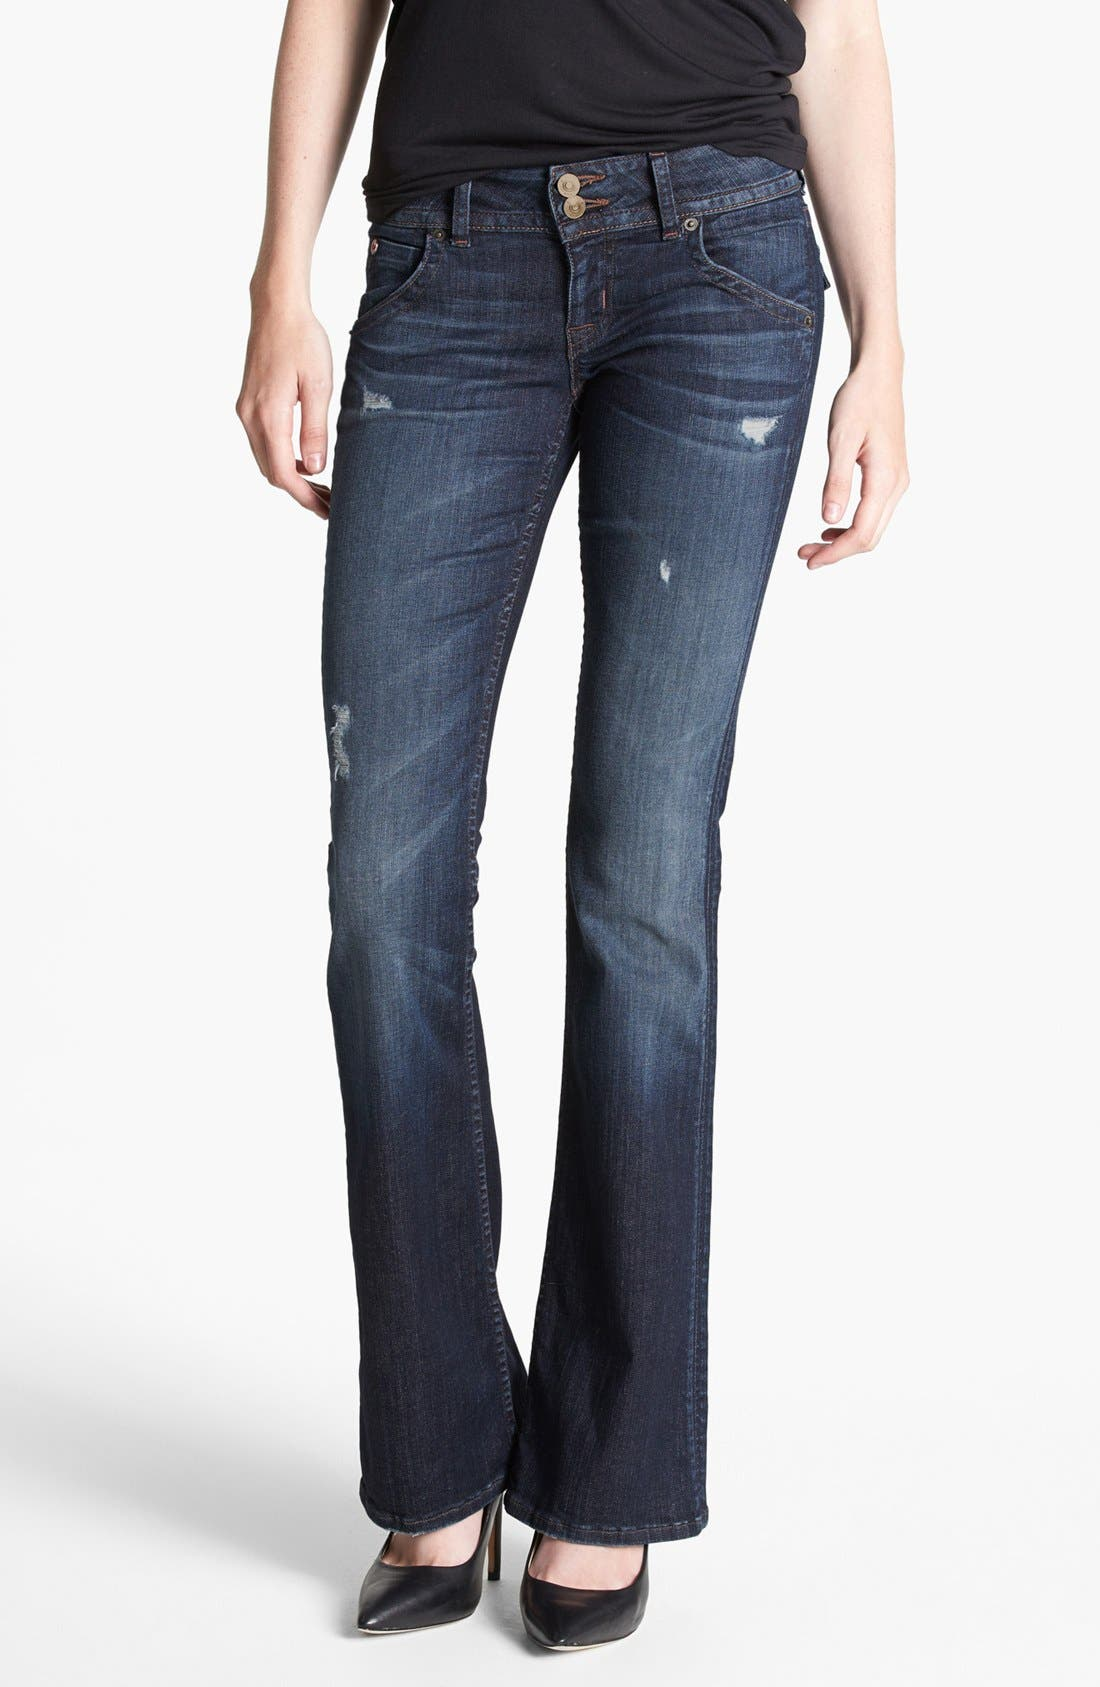 Alternate Image 1 Selected - Hudson Jeans Distressed Signature Bootcut Jeans (Escape)